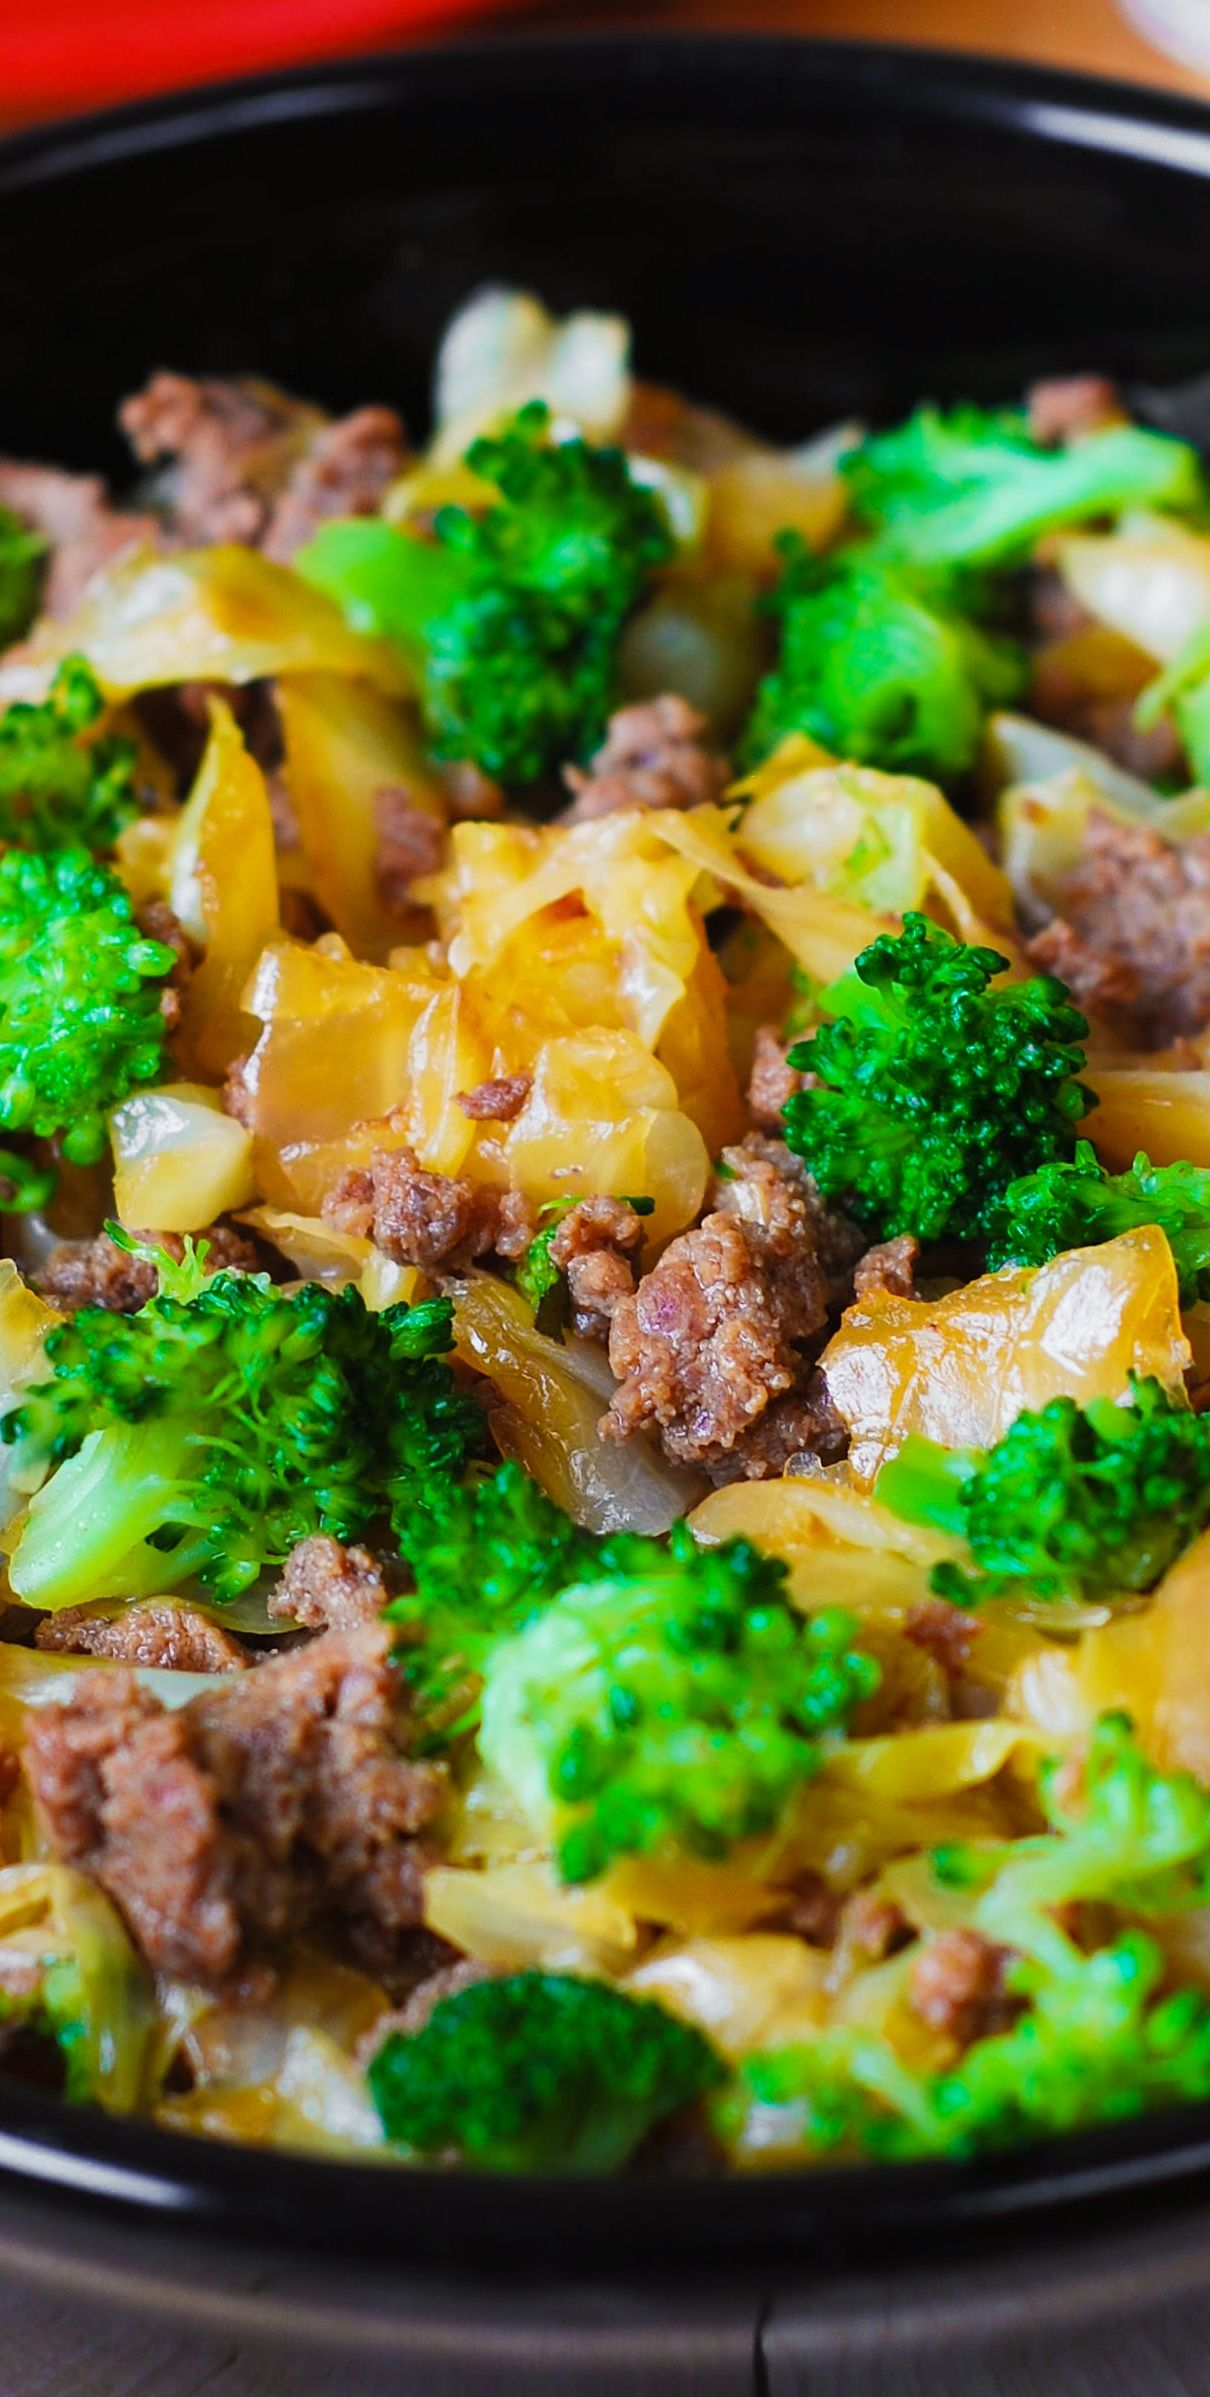 Asian beef broccoli and cabbage stir fry so easy to make and asian beef broccoli and cabbage stir fry so easy to chinese food forumfinder Gallery